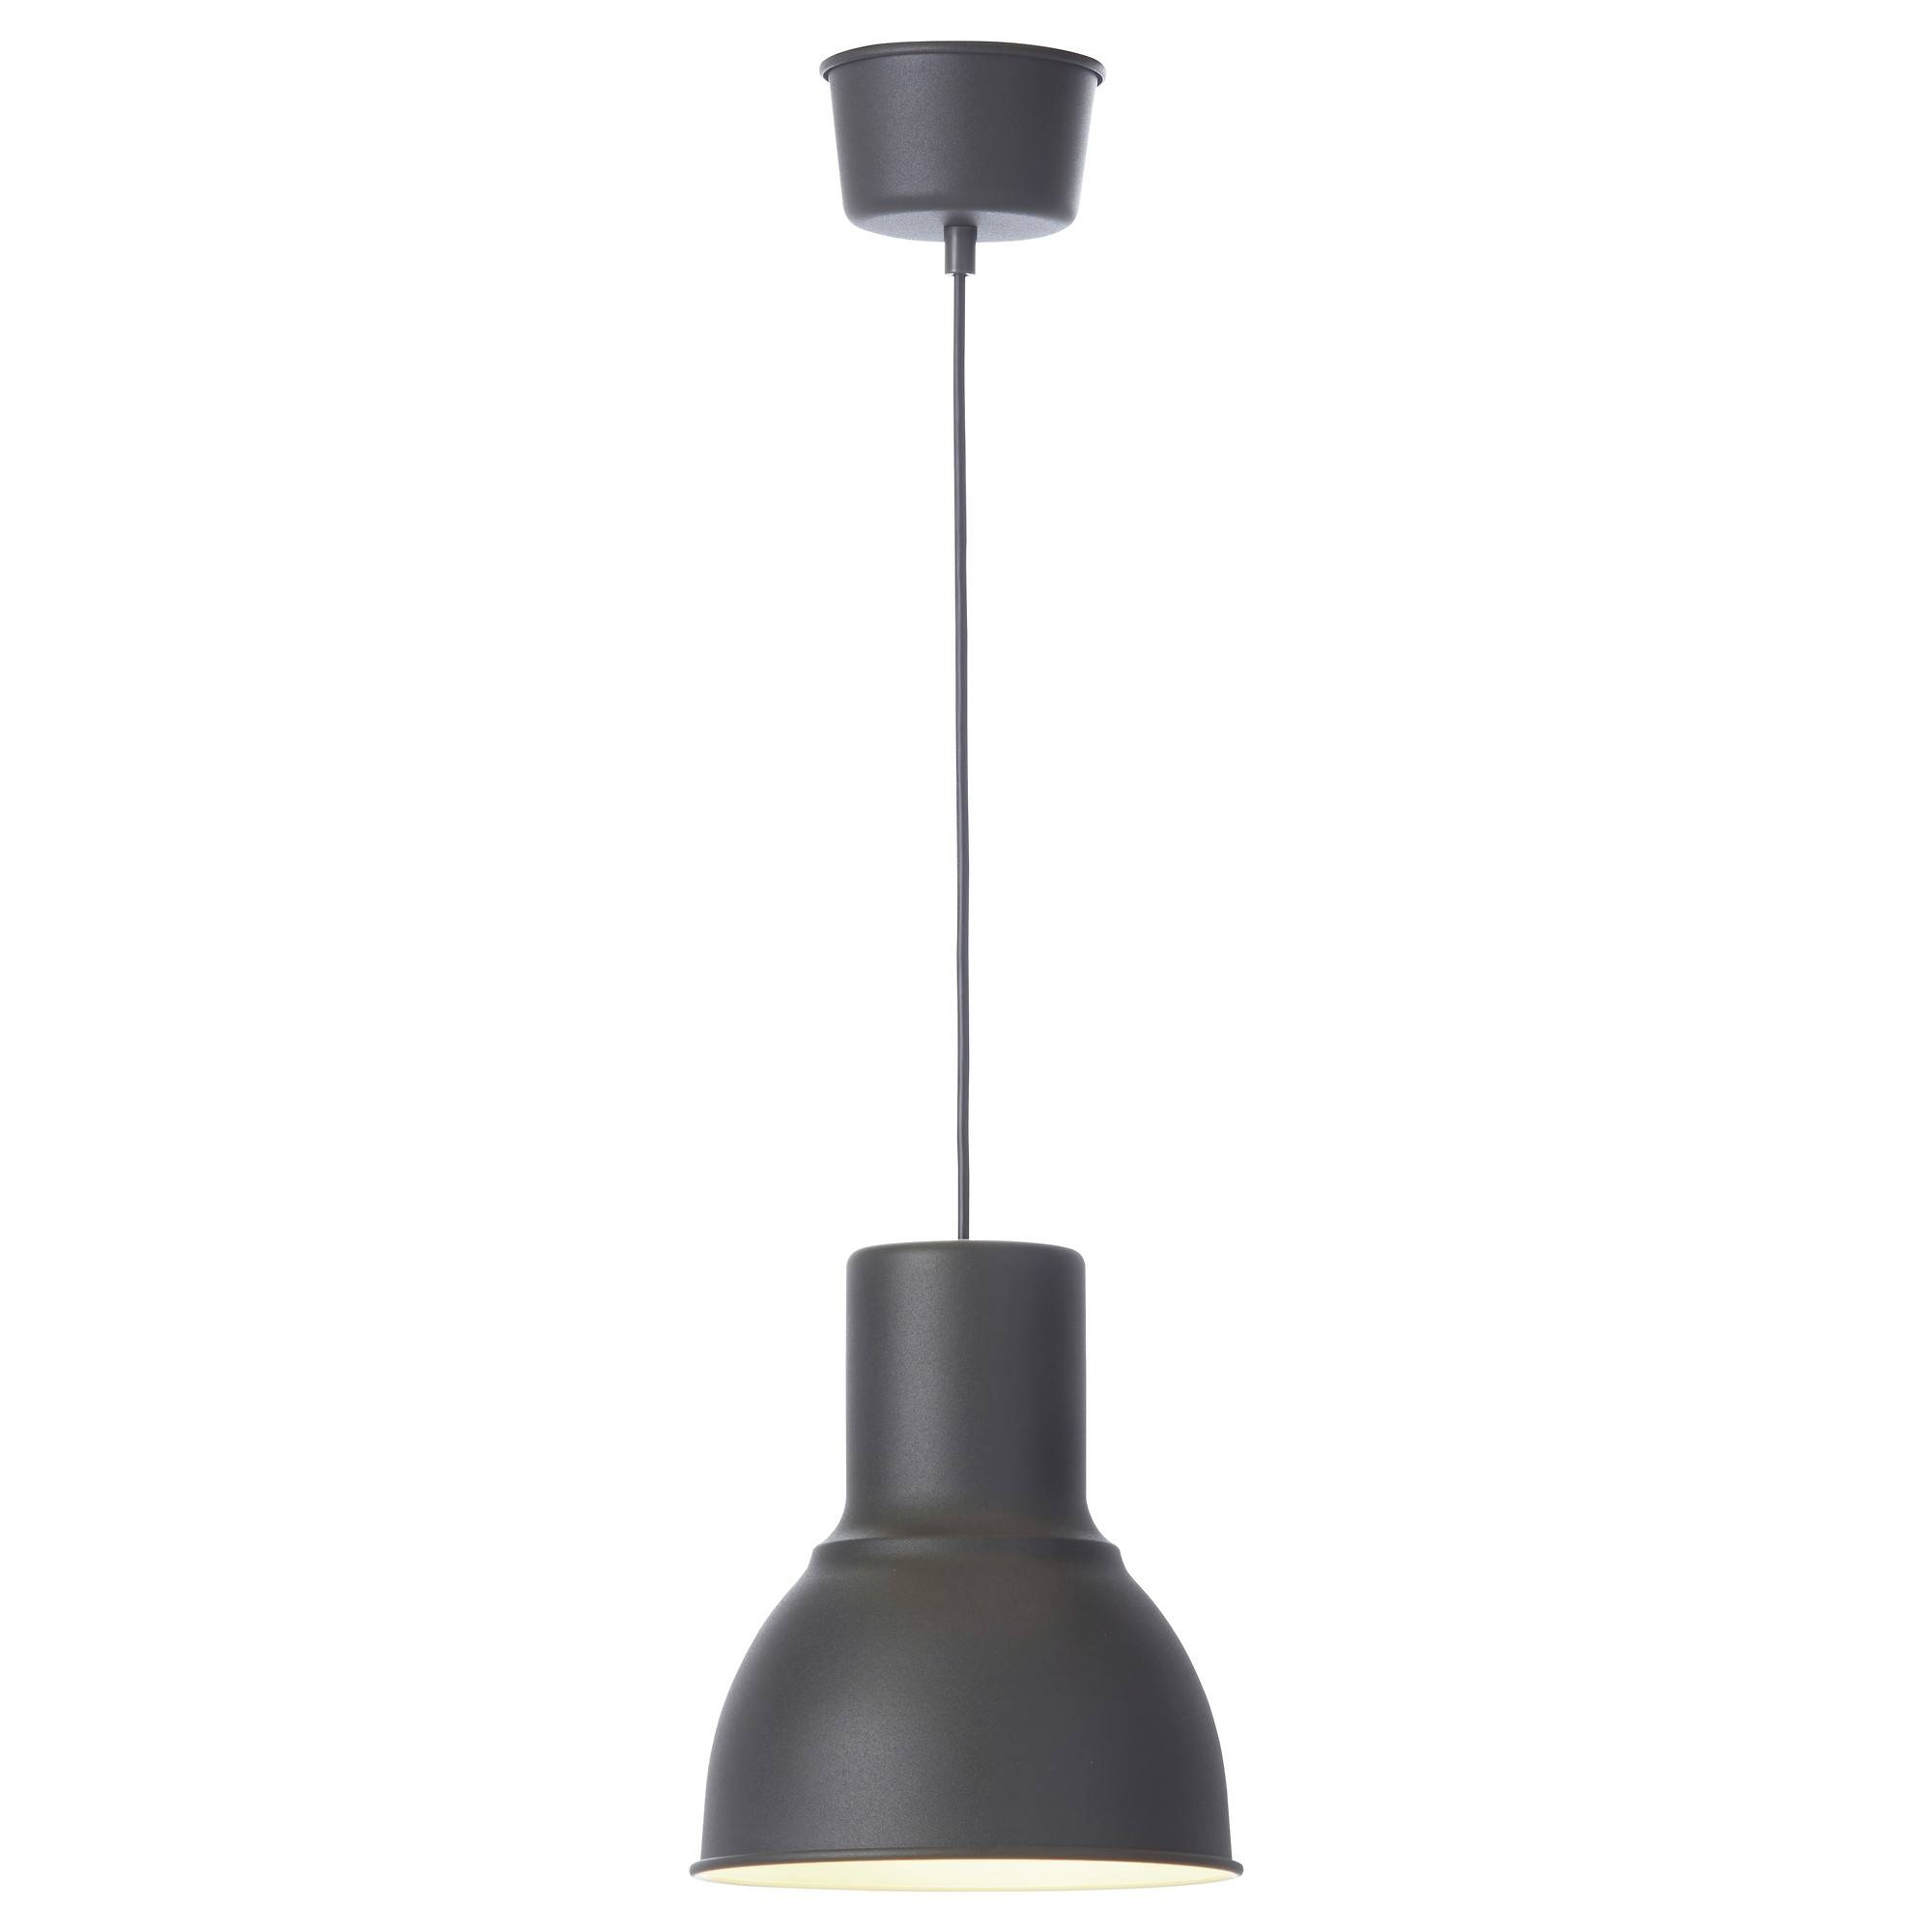 Pendant Lights & Lamp Shades – Ikea Throughout Ikea Pendants (View 11 of 15)